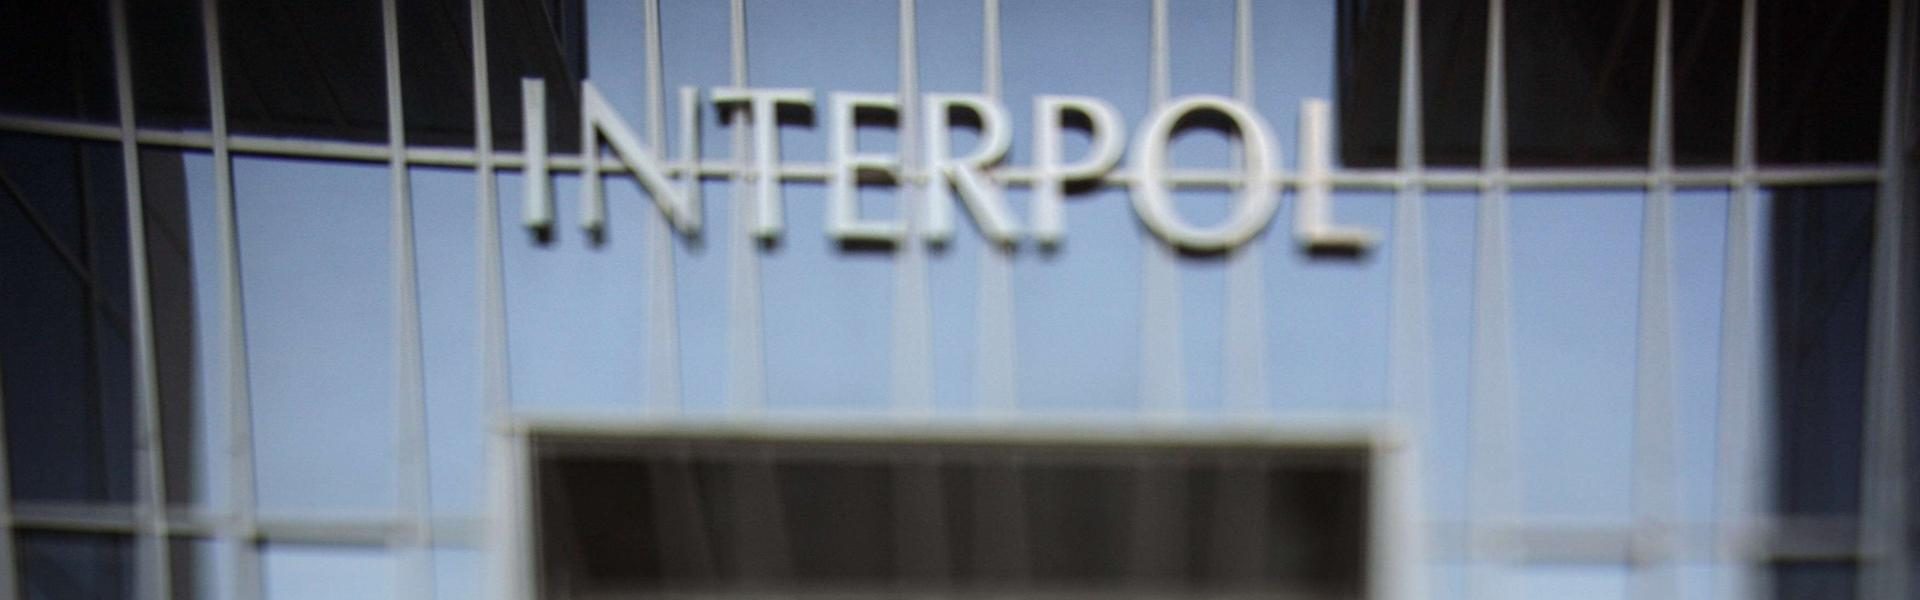 Photo taken on October 19, 2007, in Lyon, shows Interpol's building. (Photo by FRED DUFOUR / AFP)